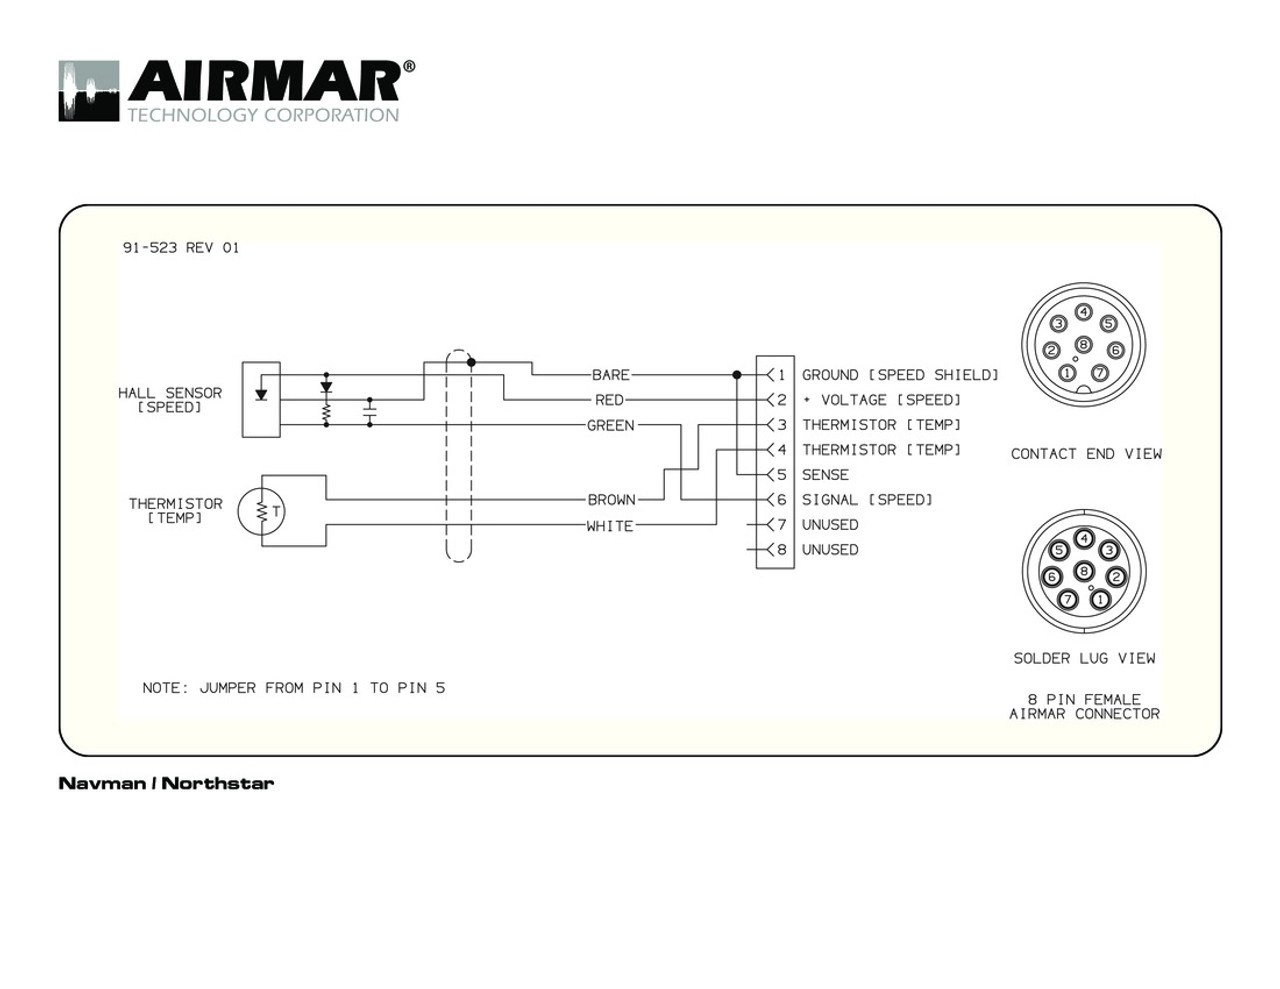 northstar wiring diagram wiring diagram g8 baja wiring diagram airmar wiring diagram navman northstar blue [ 1100 x 850 Pixel ]